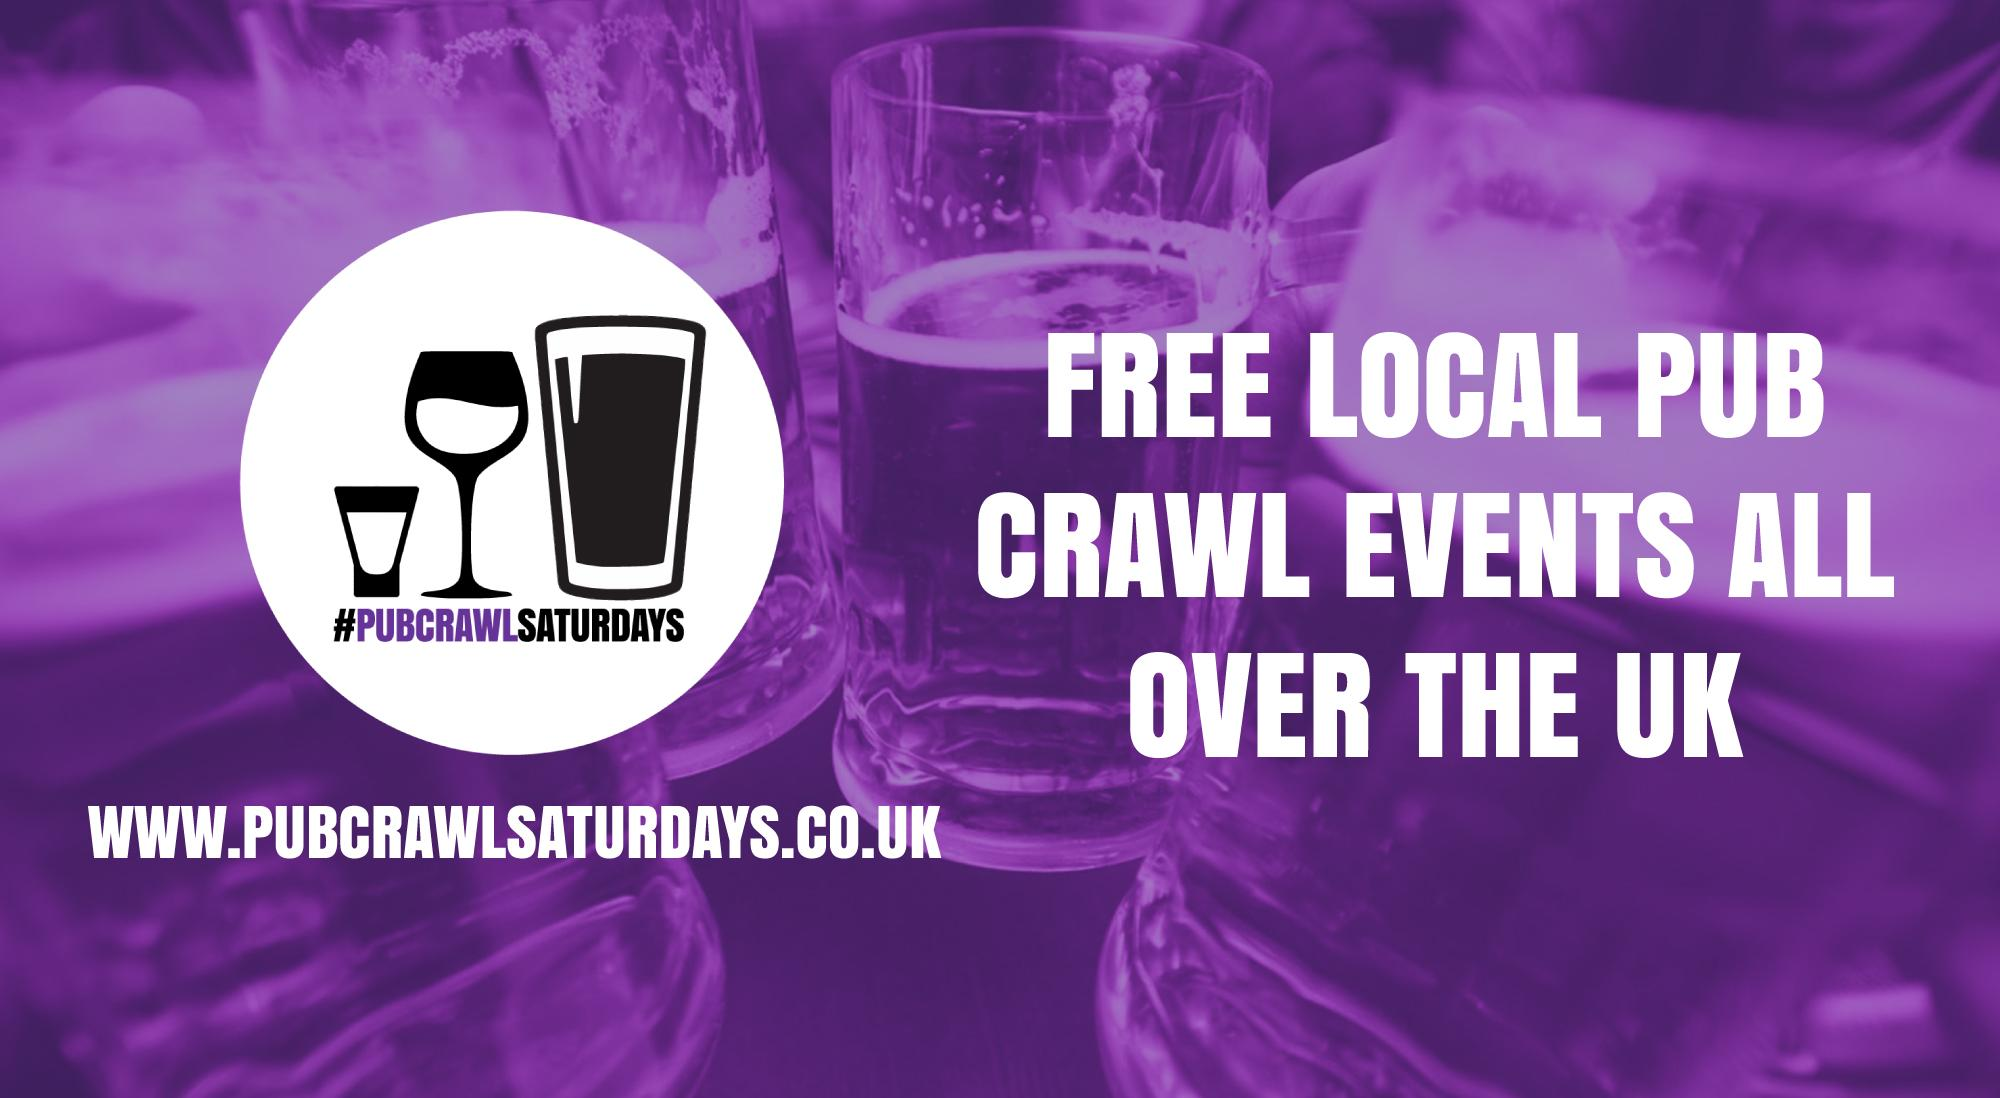 PUB CRAWL SATURDAYS! Free weekly pub crawl event in Leith